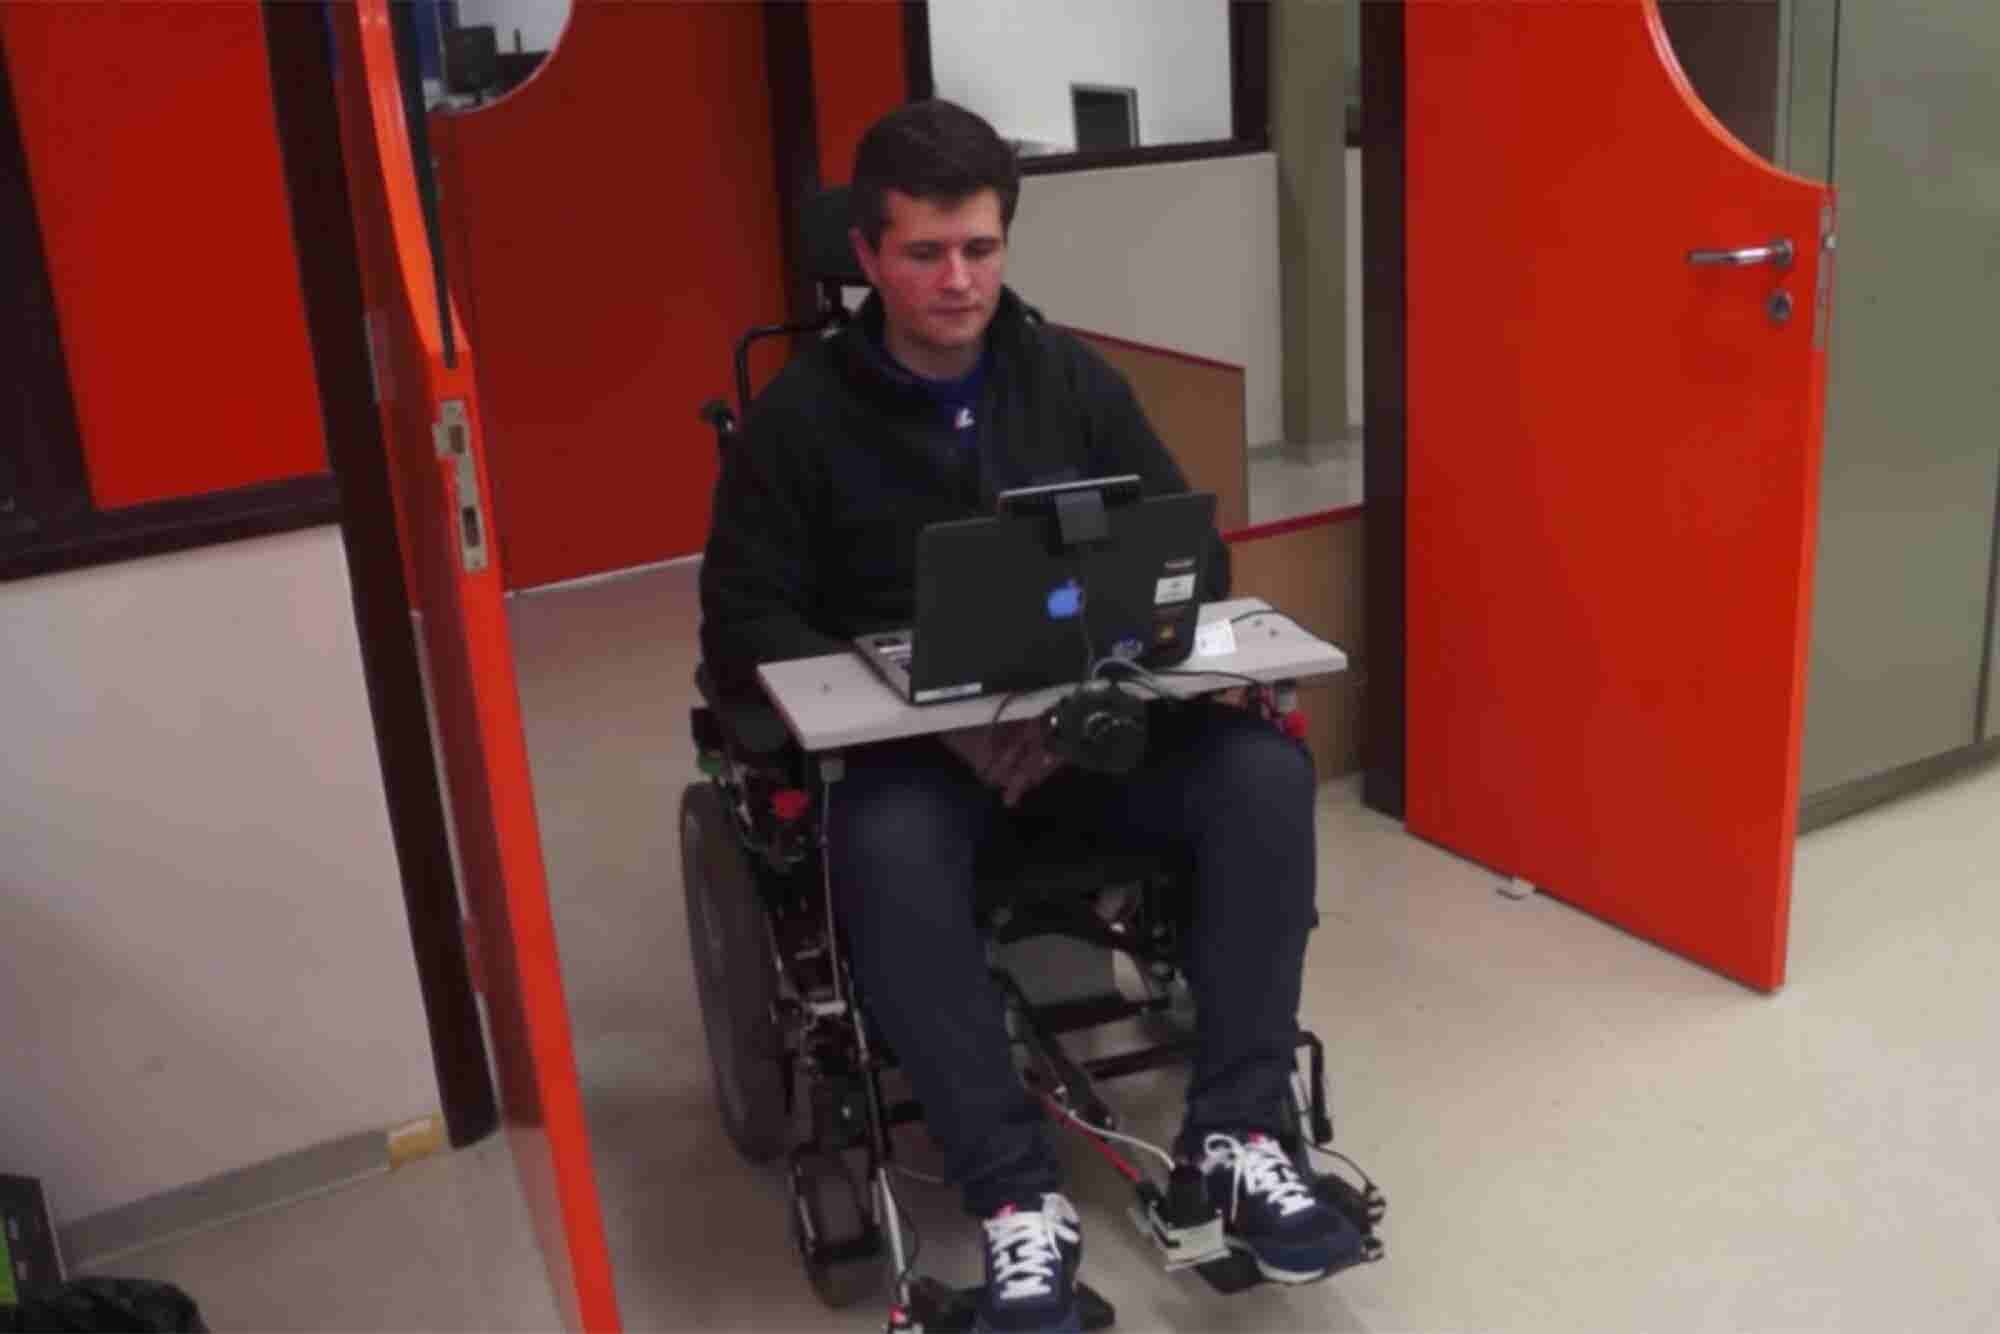 All You Need to Control This Wheelchair Is Your Face